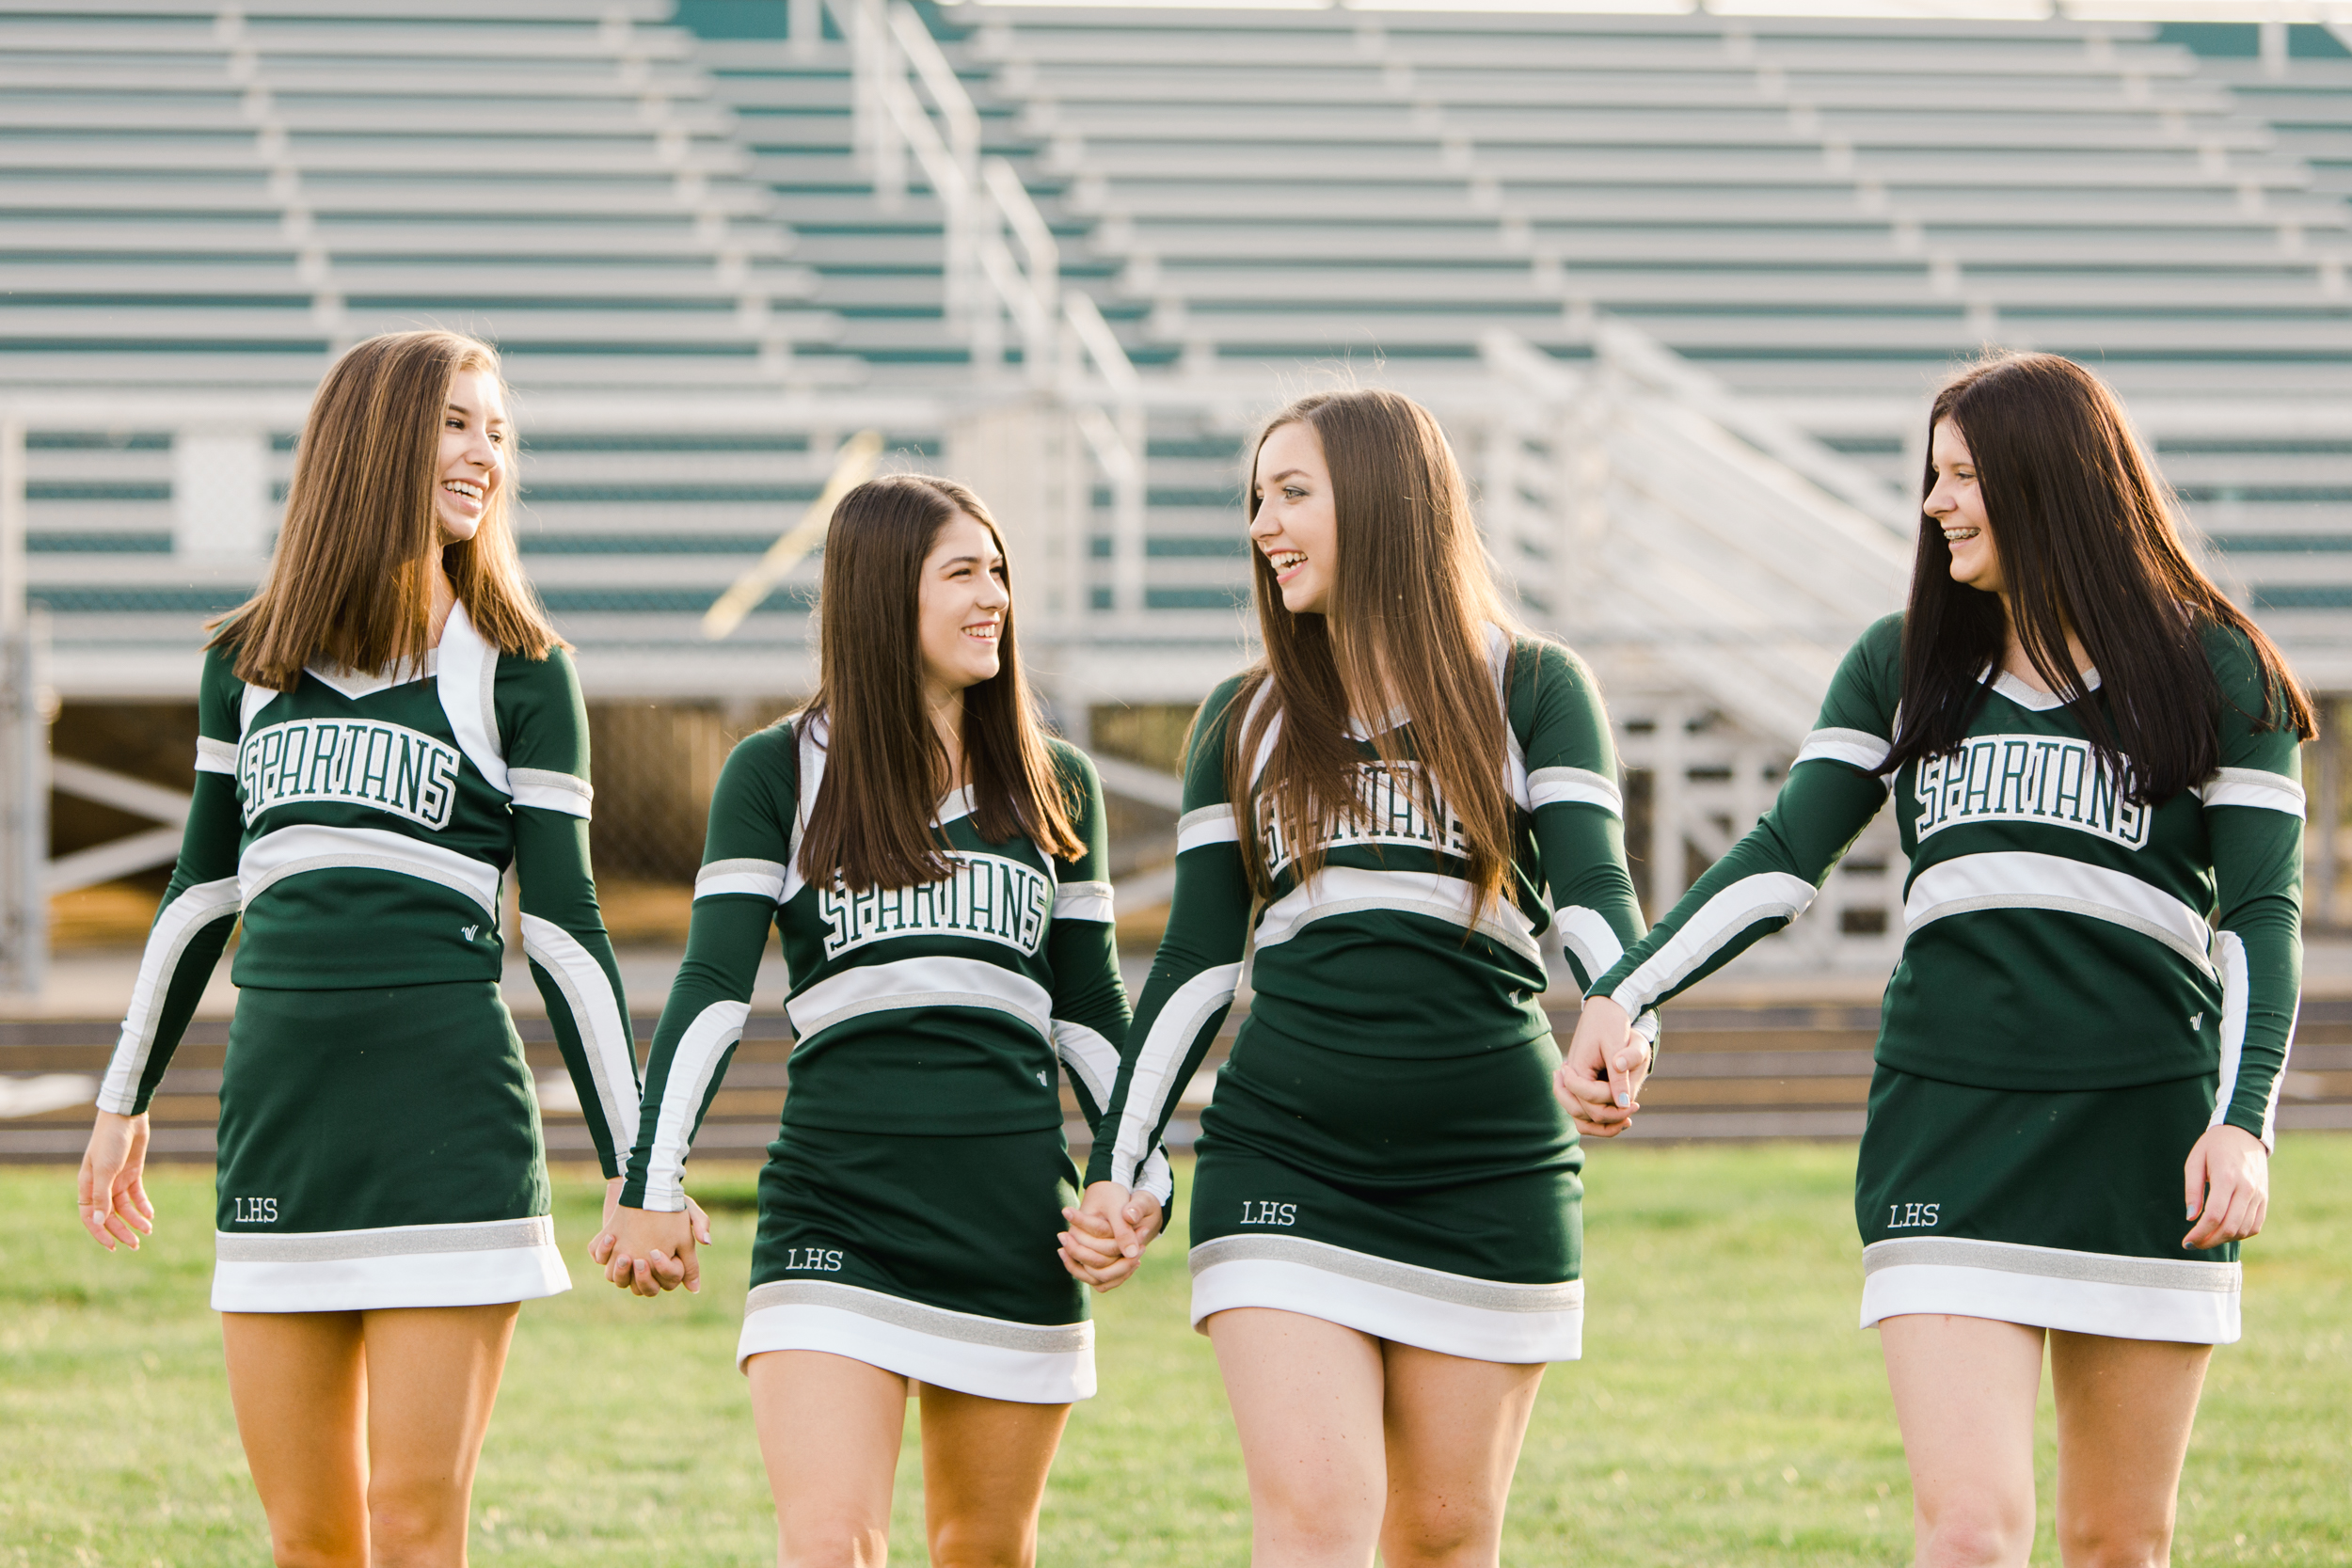 Laurel_HS_Varisty_Senior_2019_Cheerleaders (9 of 27).jpg